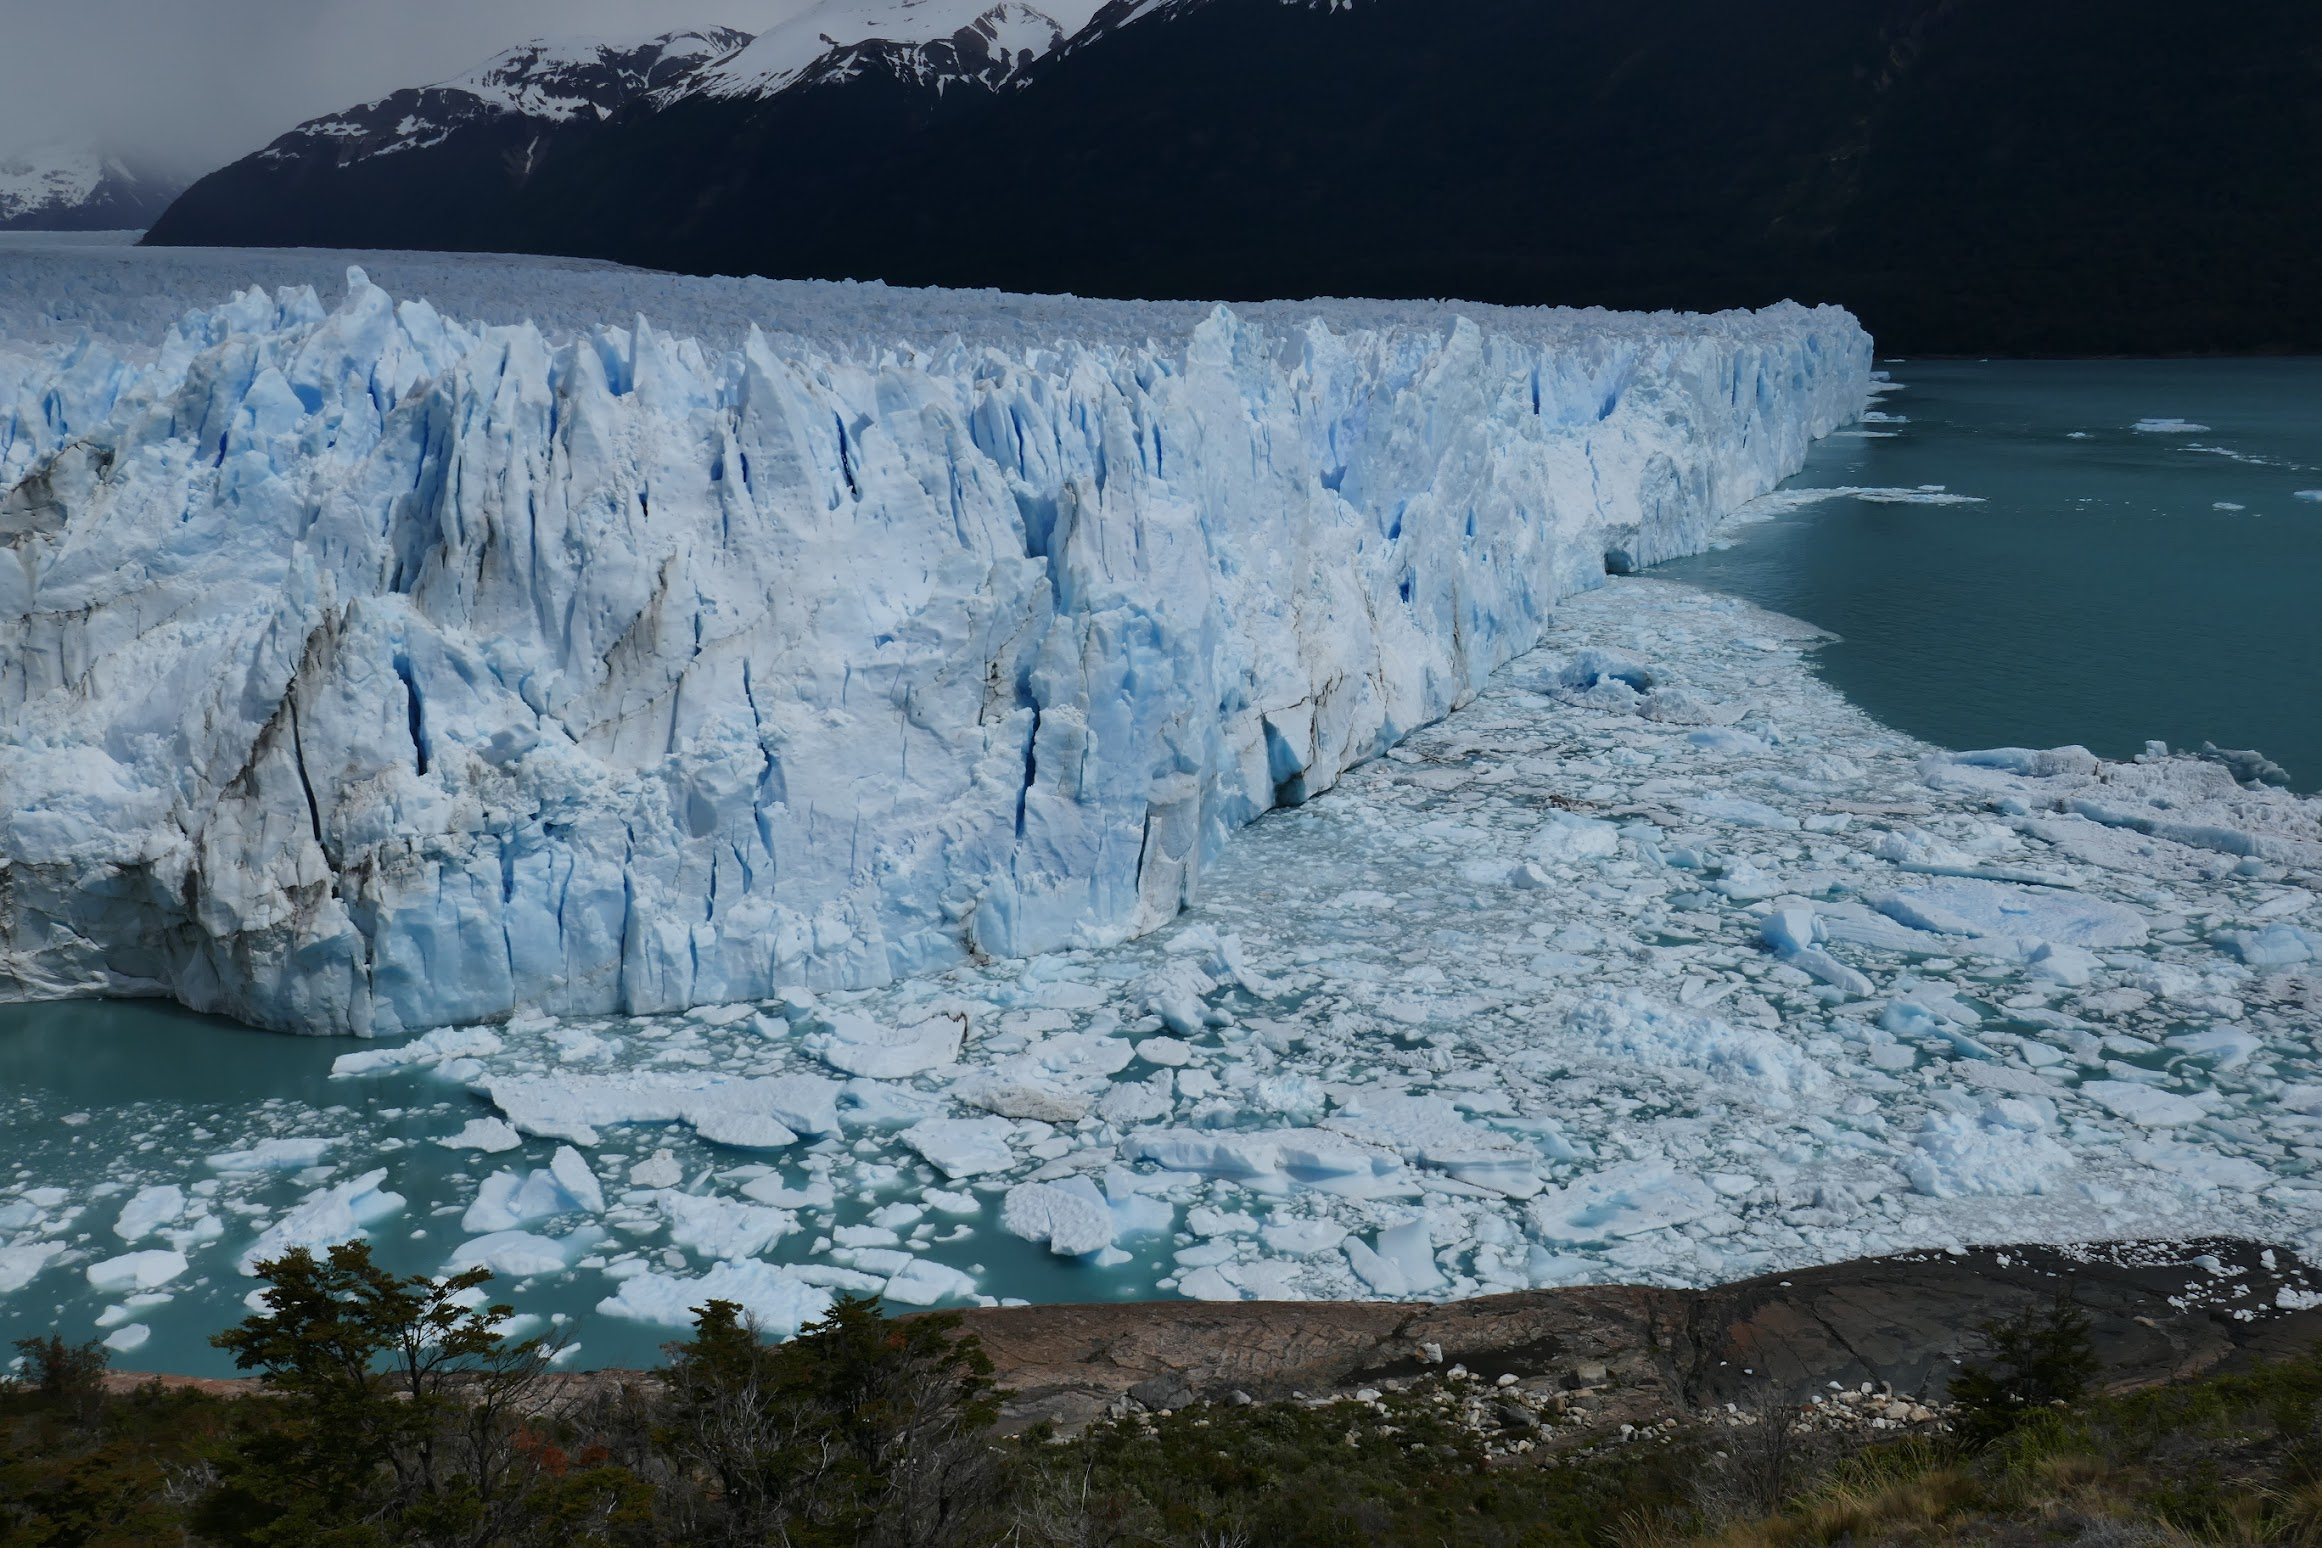 The part of the glacier that faces into Lago Argentino